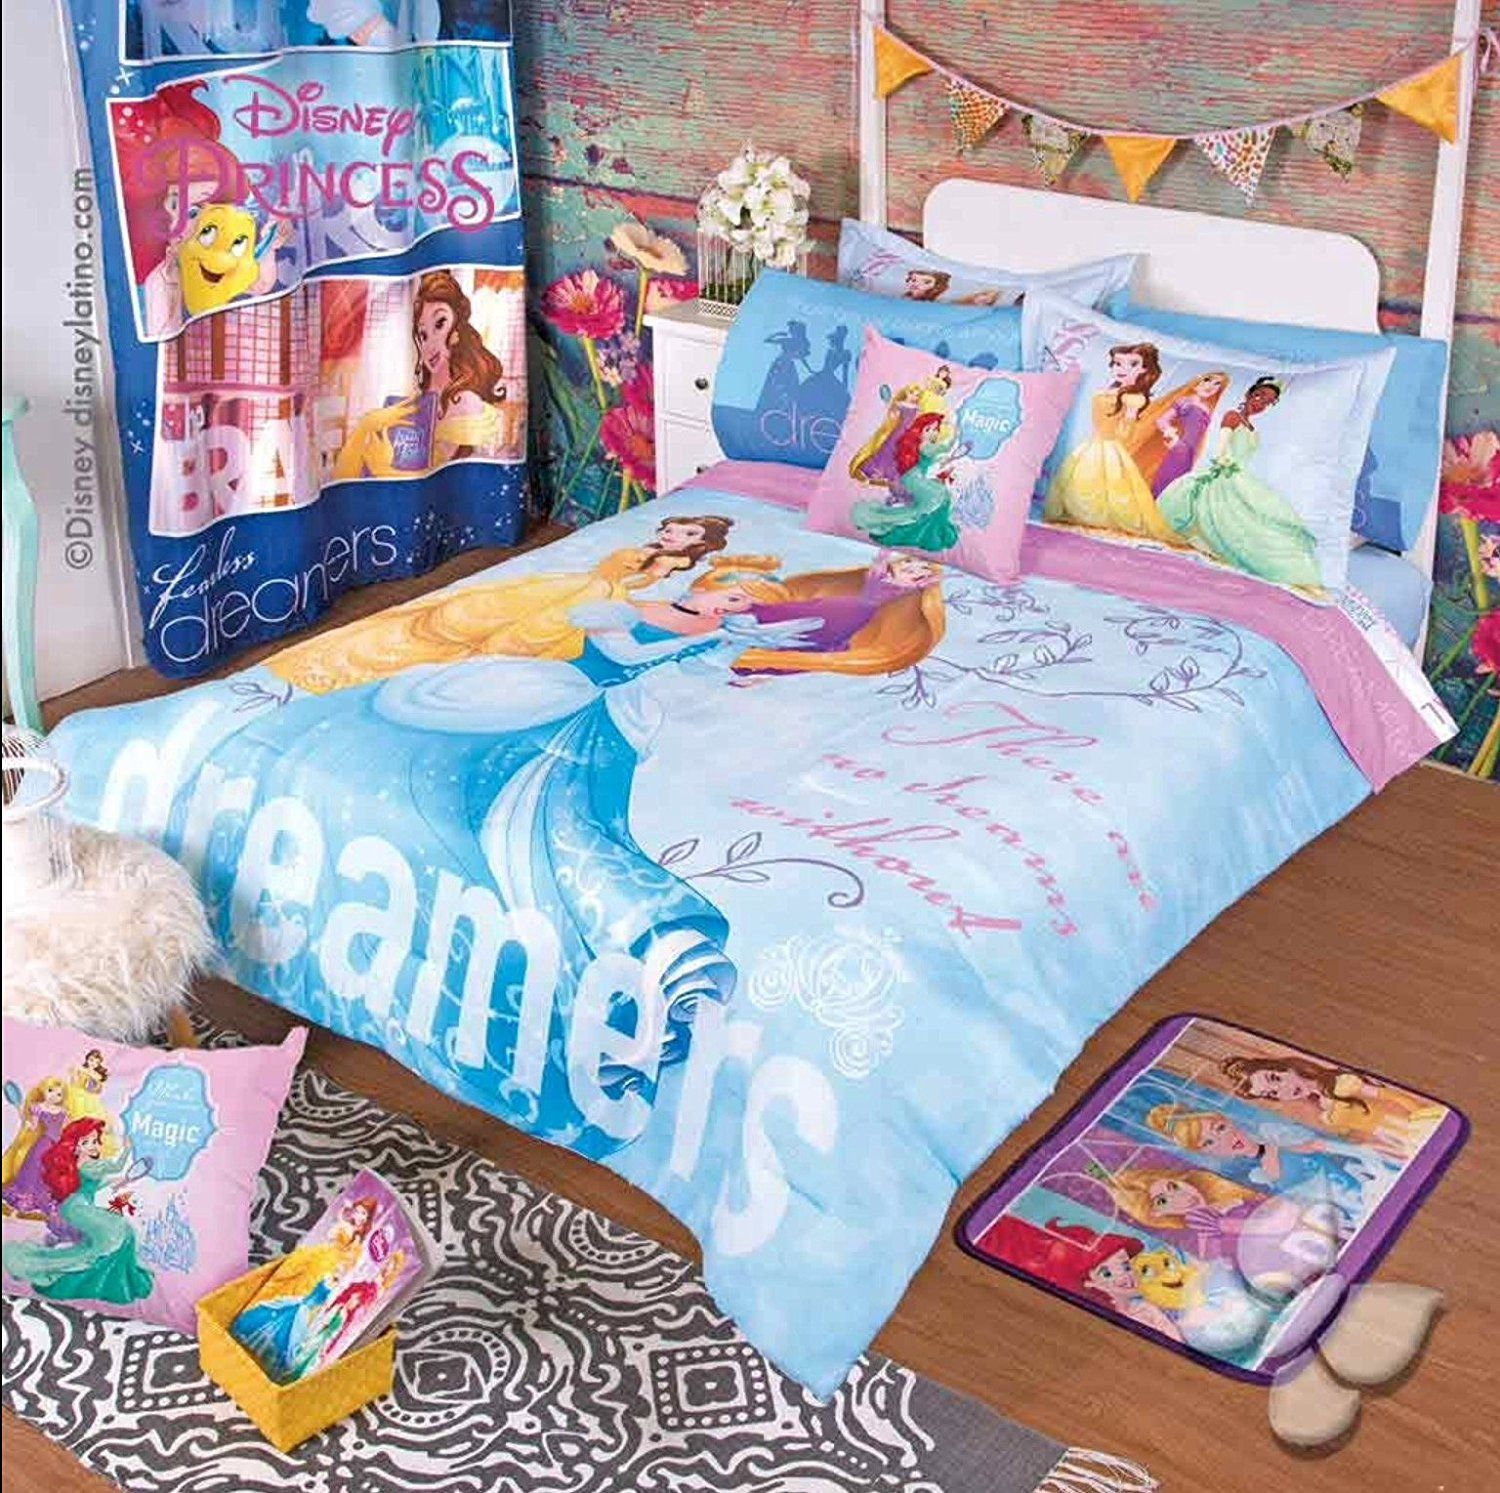 Princess Beautiful Disney Original Comforter Set 9 Pcs Queen Only 192 Princess Comforter Comforter Sets Queen Comforter Sets